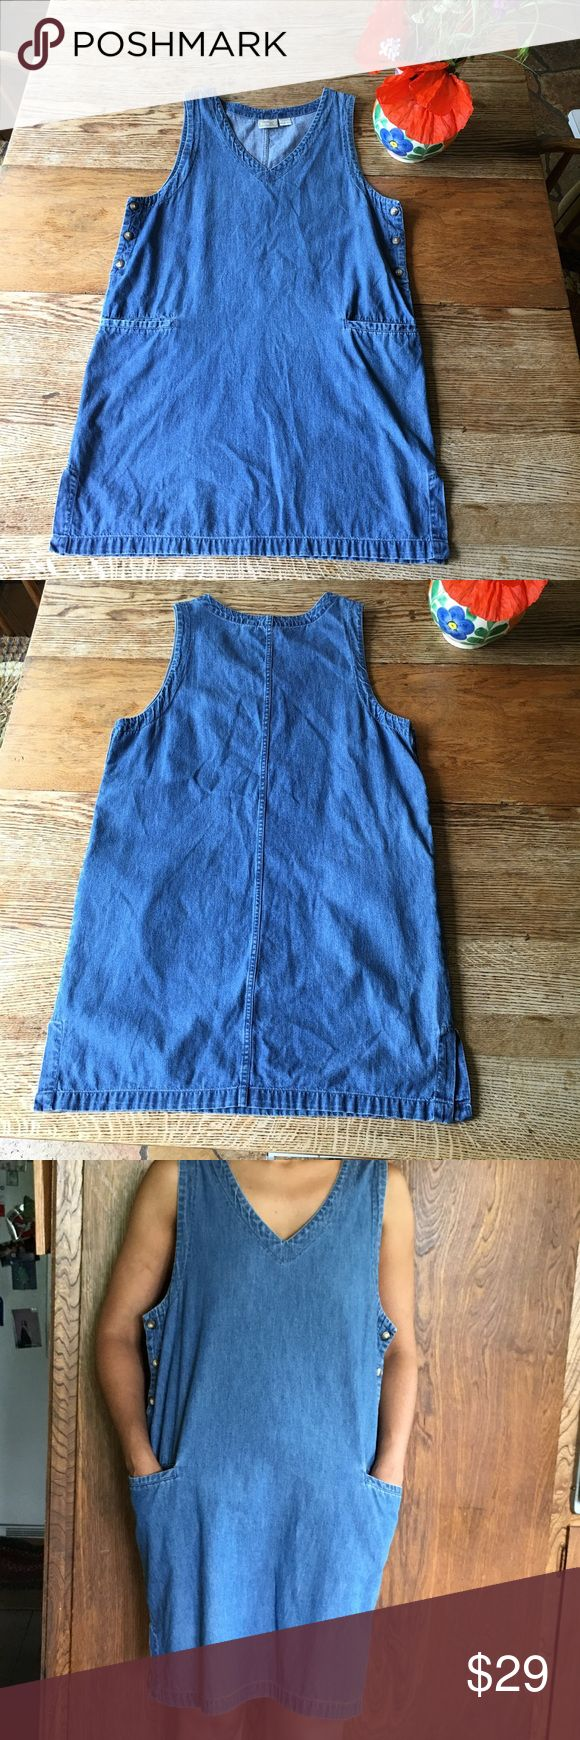 "OFFERS WELCOME 💓 DONATING 7/23 🚚 Vintage, sweet and soft Jean dress. In great shape with v-neck, waist pockets and side buttons. Size large. Modeled on size 4/6*** Approximately 34"" from shoulder to hem. 100% cotton. Dresses"